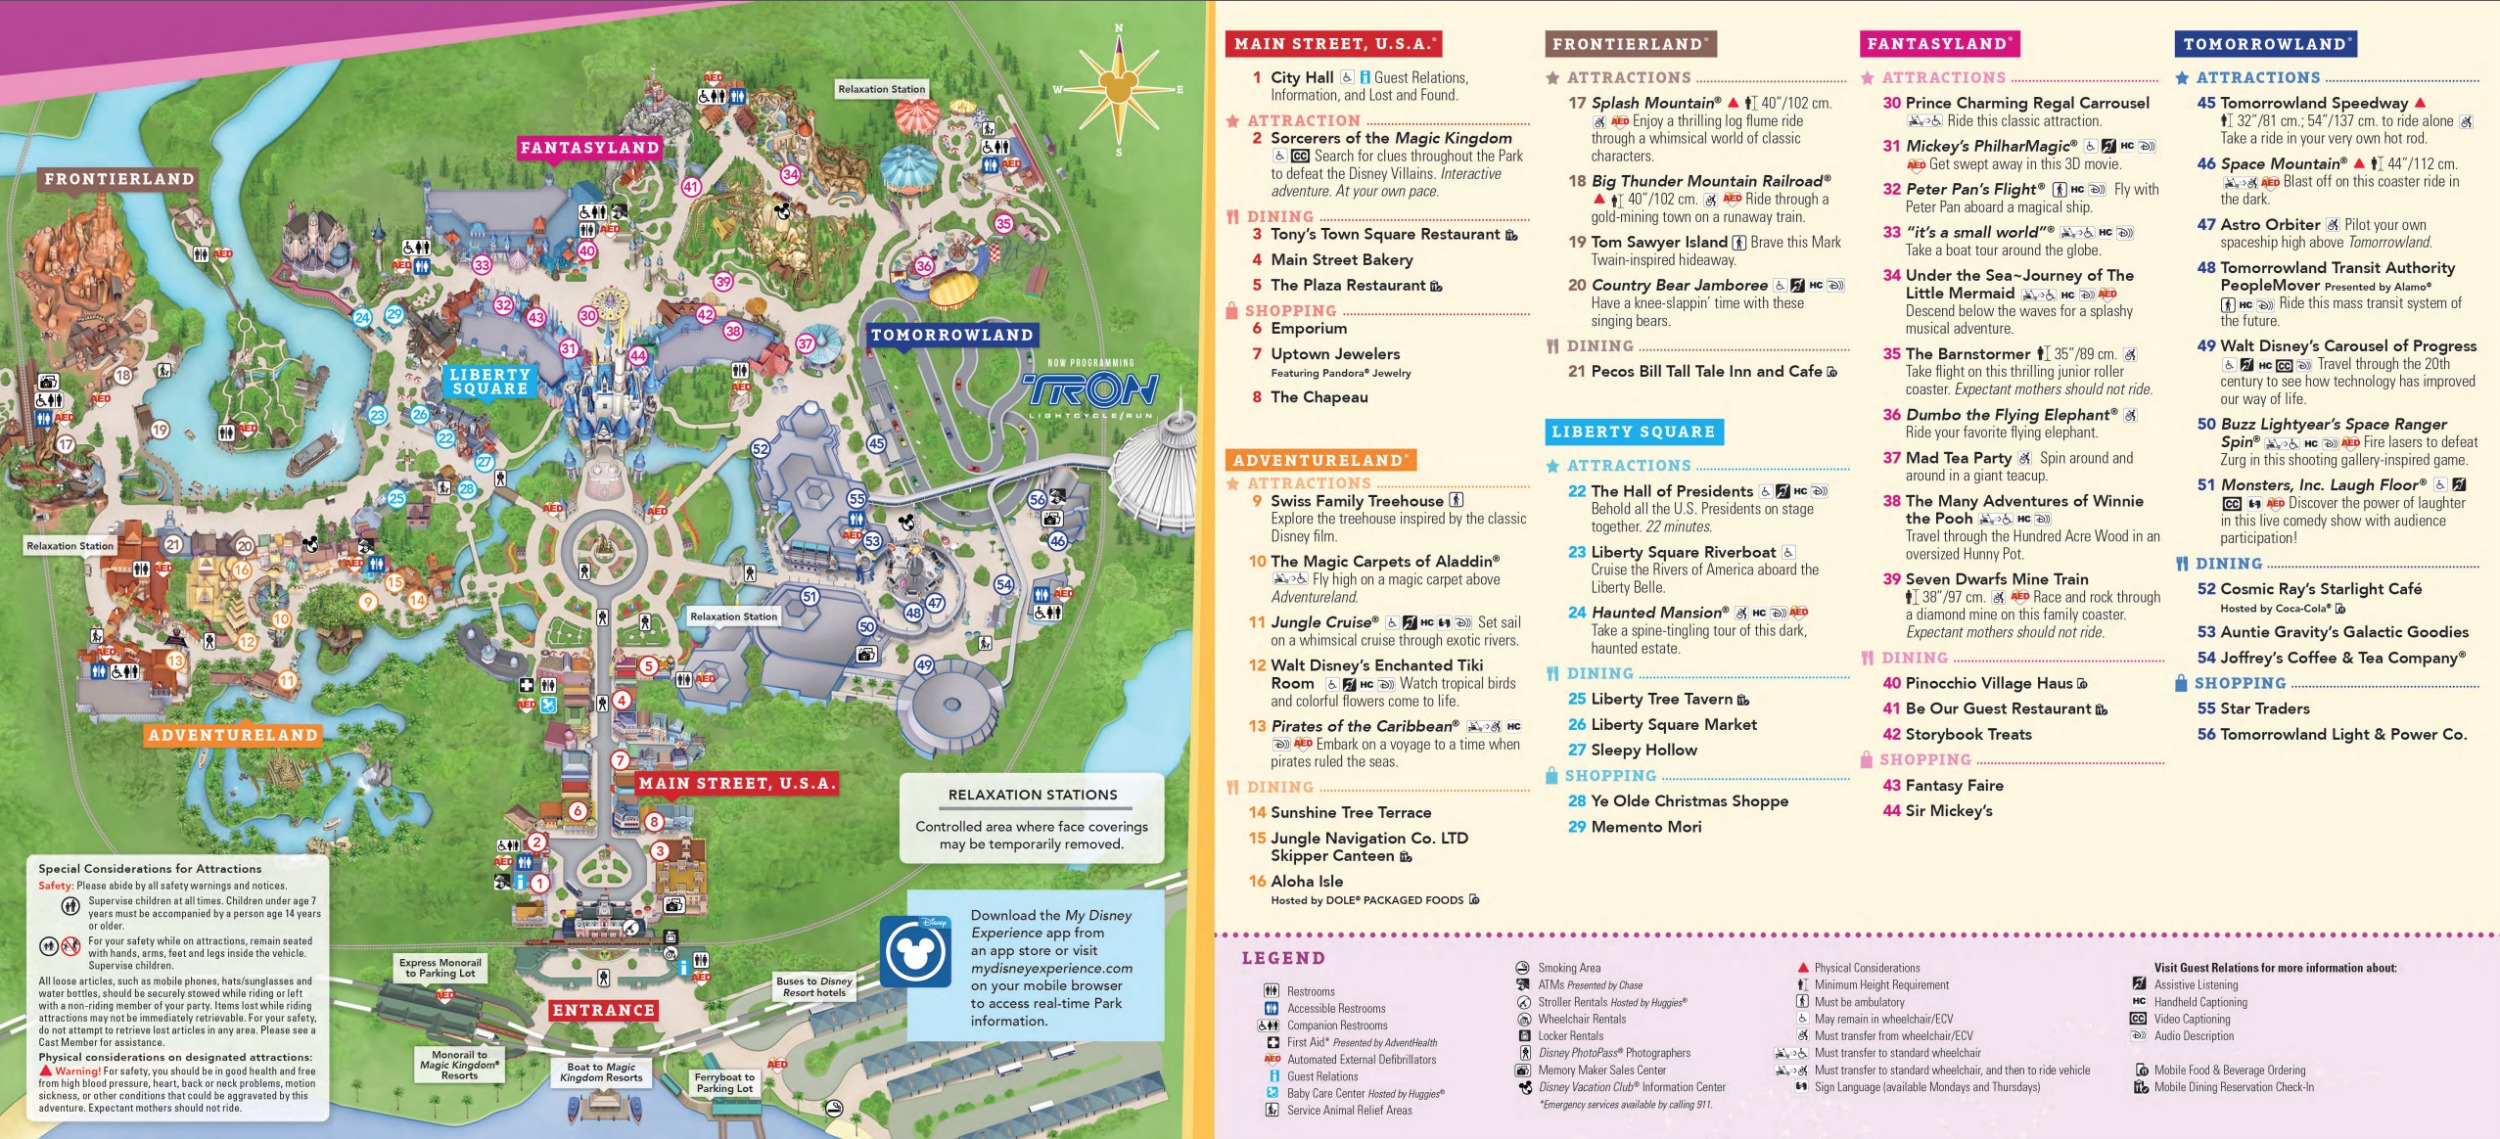 Magic Kingdom Park Map - Walt Disney World on walt disney world resort, disneyland park map, universal map, disney map, space mountain, haunted mansion, big thunder mountain railroad, tokyo disneysea map, hong kong disneyland map, tokyo disneyland map, sleeping beauty map, hong kong disneyland, animal kingdom map, polynesian resort map, pirates of the caribbean, tokyo disneyland, islands of adventure, cinderella castle, florida map, epcot center map, disneyland paris map, splash mountain, downtown disney, universal studios florida, seaworld orlando, typhoon lagoon map, adventureland map, kingdom keepers map, new fantasyland map, main street map, tomorrowland map, orlando map, busch gardens map,